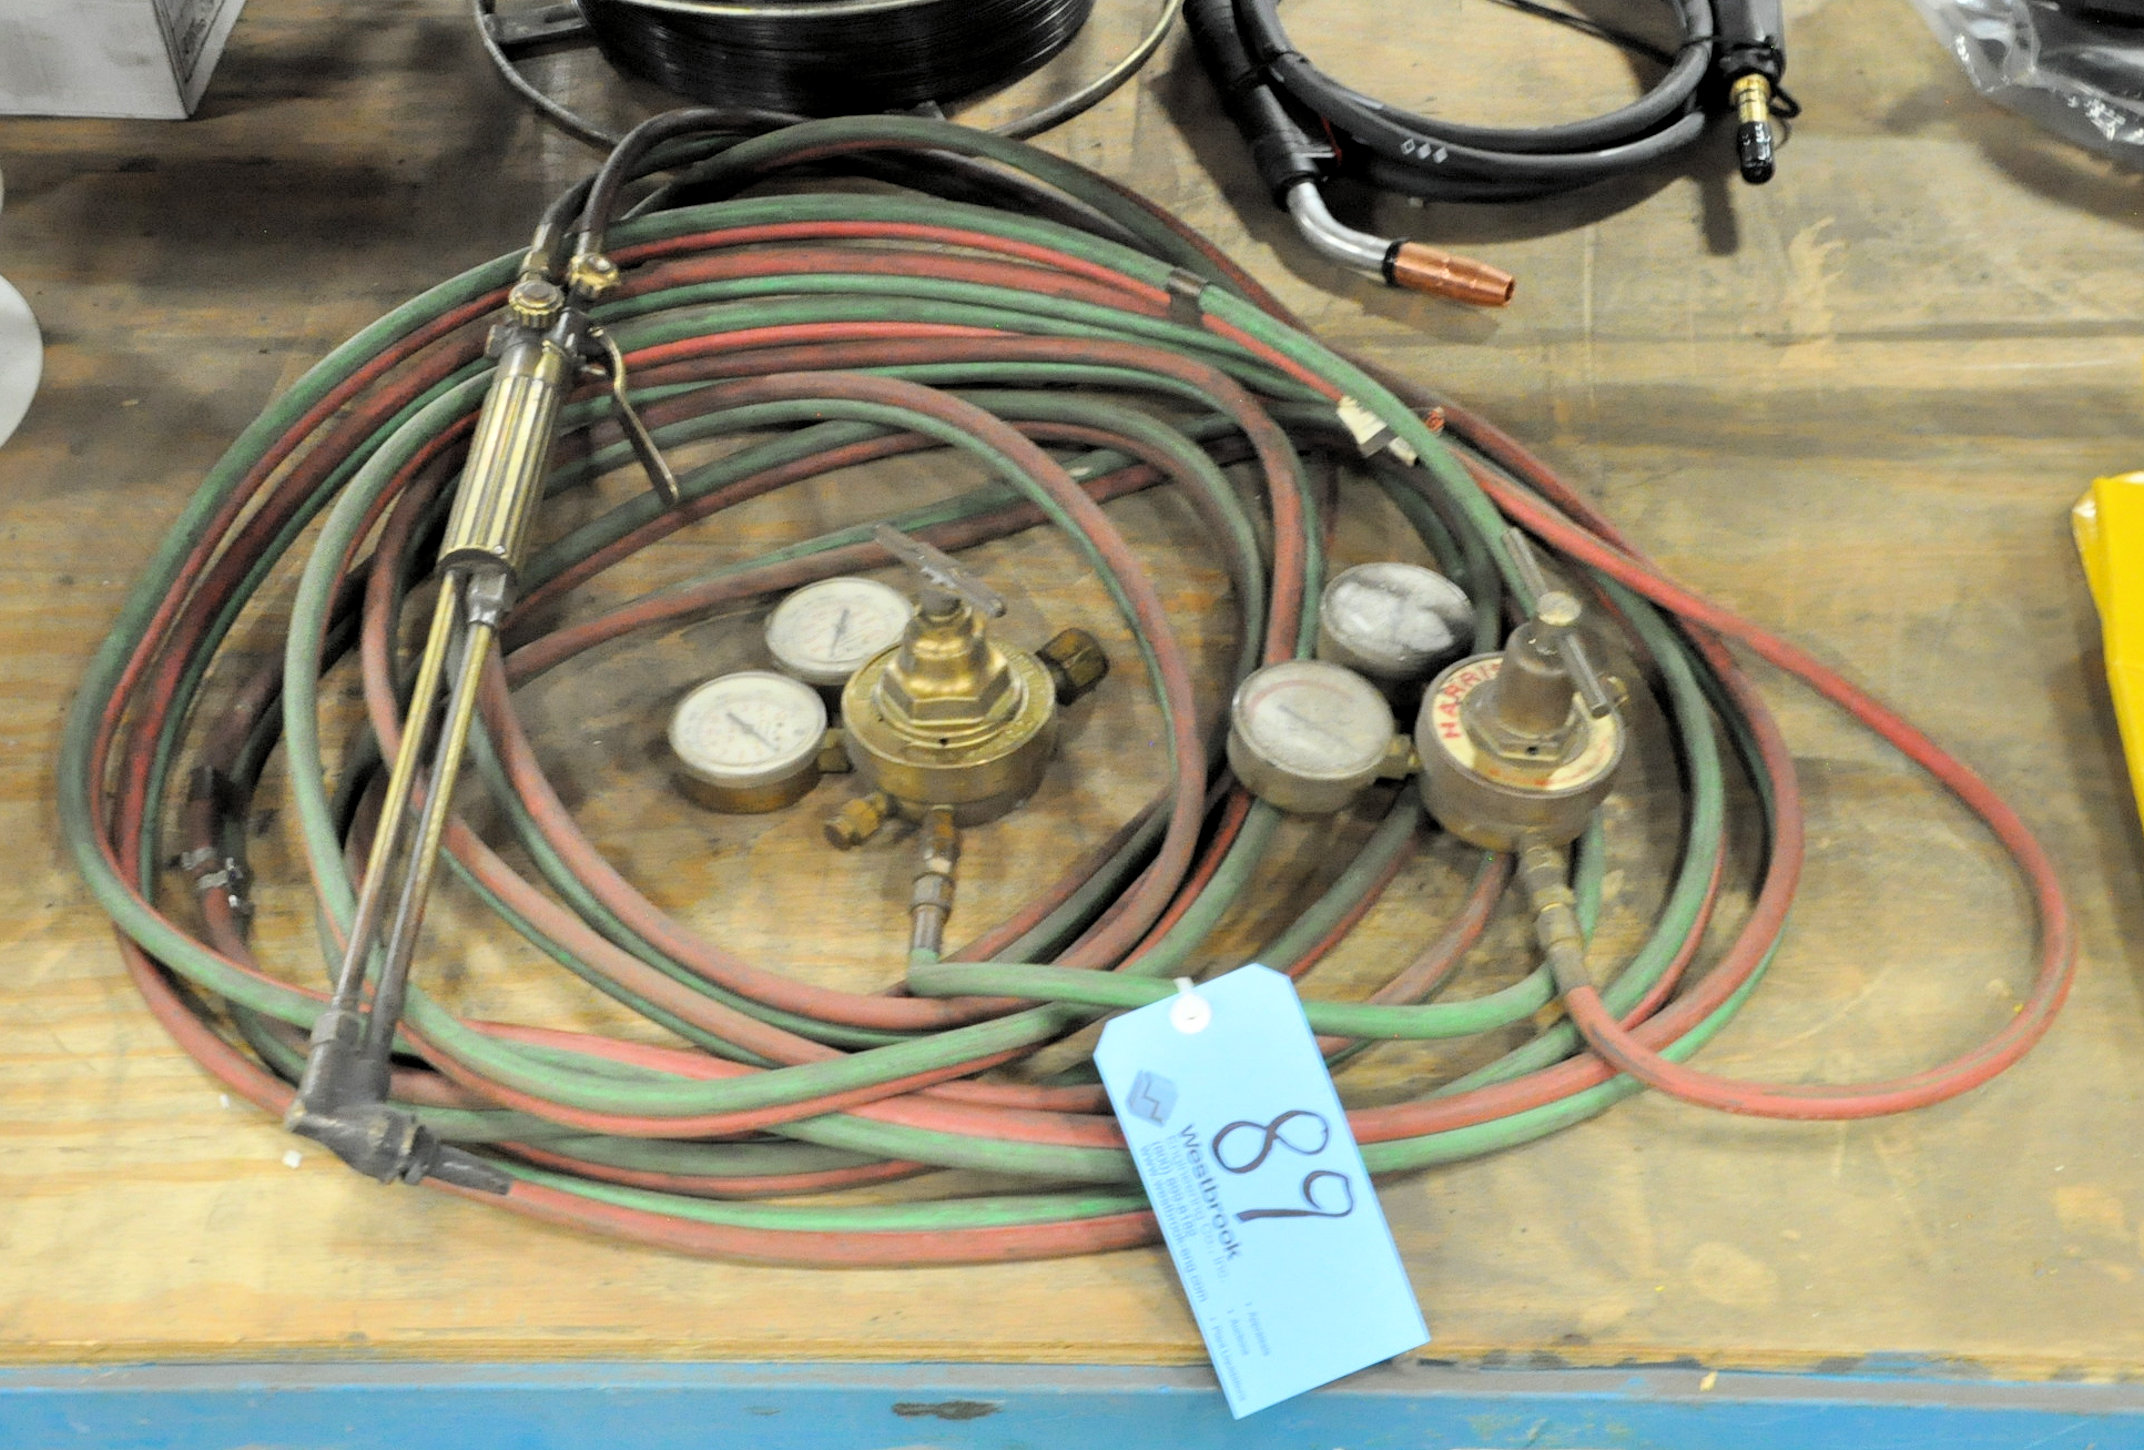 Oxygen/Acetylene Hose with Torch and Victor/Harris Regulators